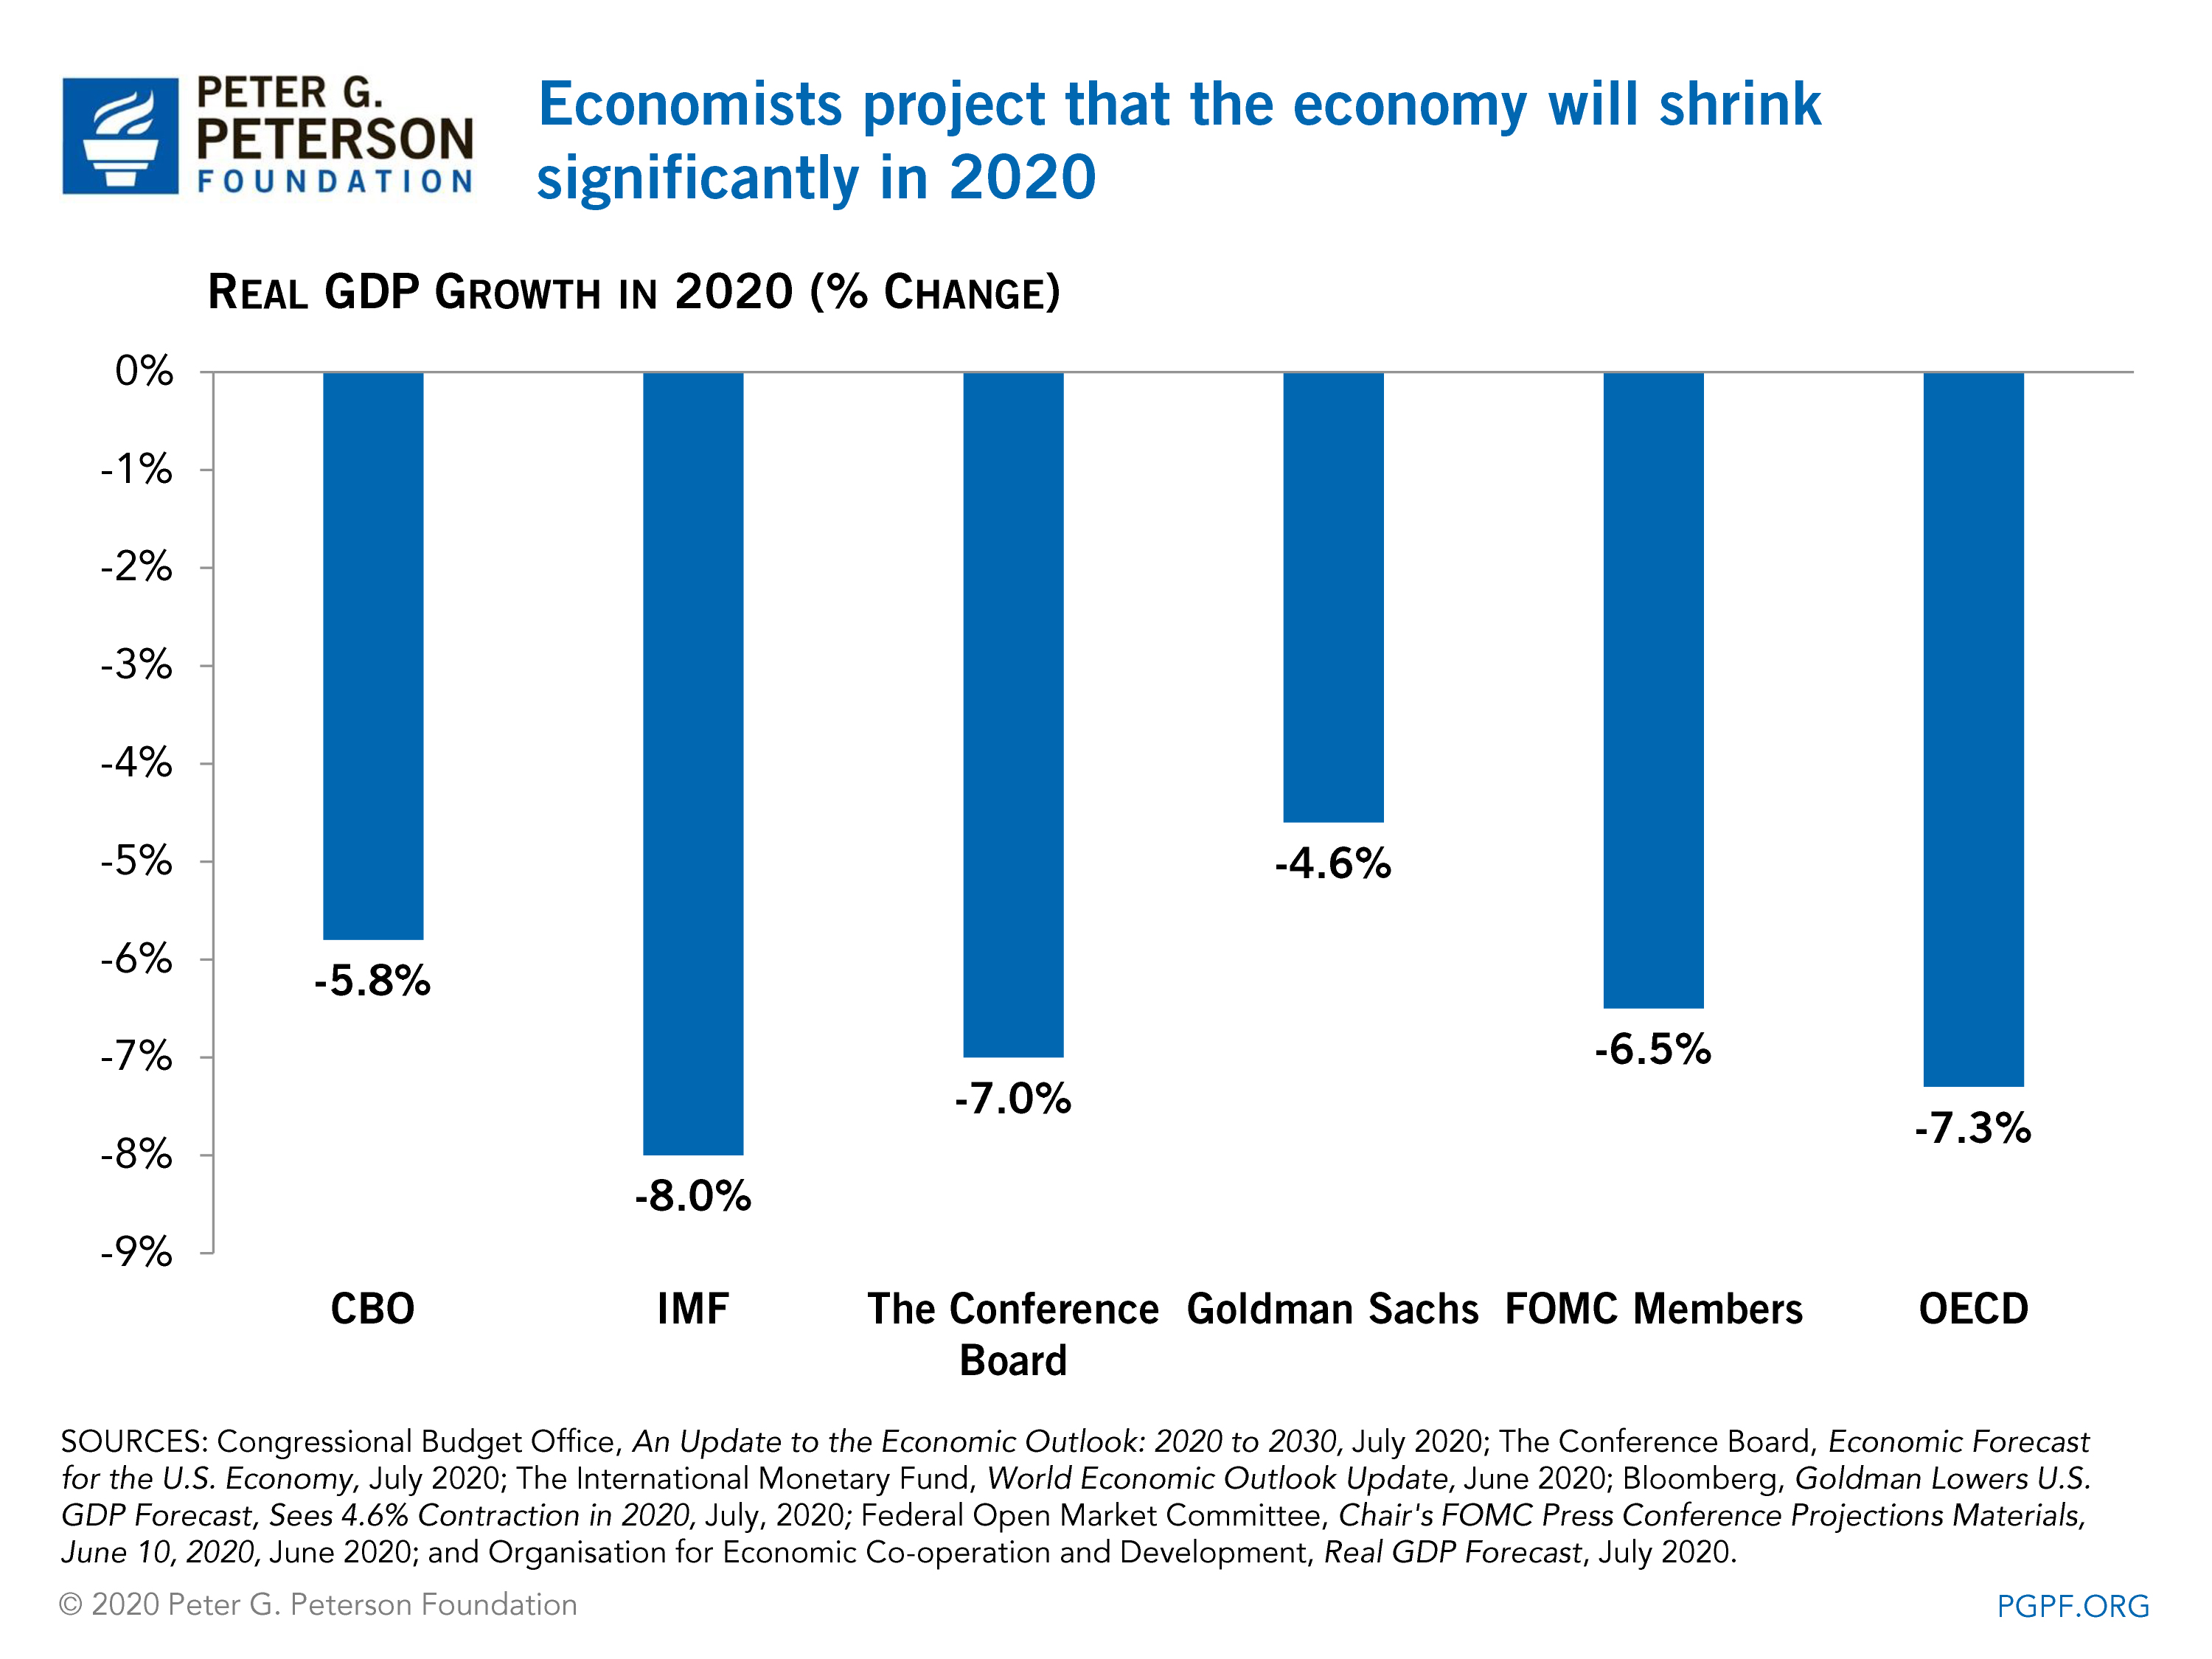 Economists project that the economy will shrink significantly in 2020